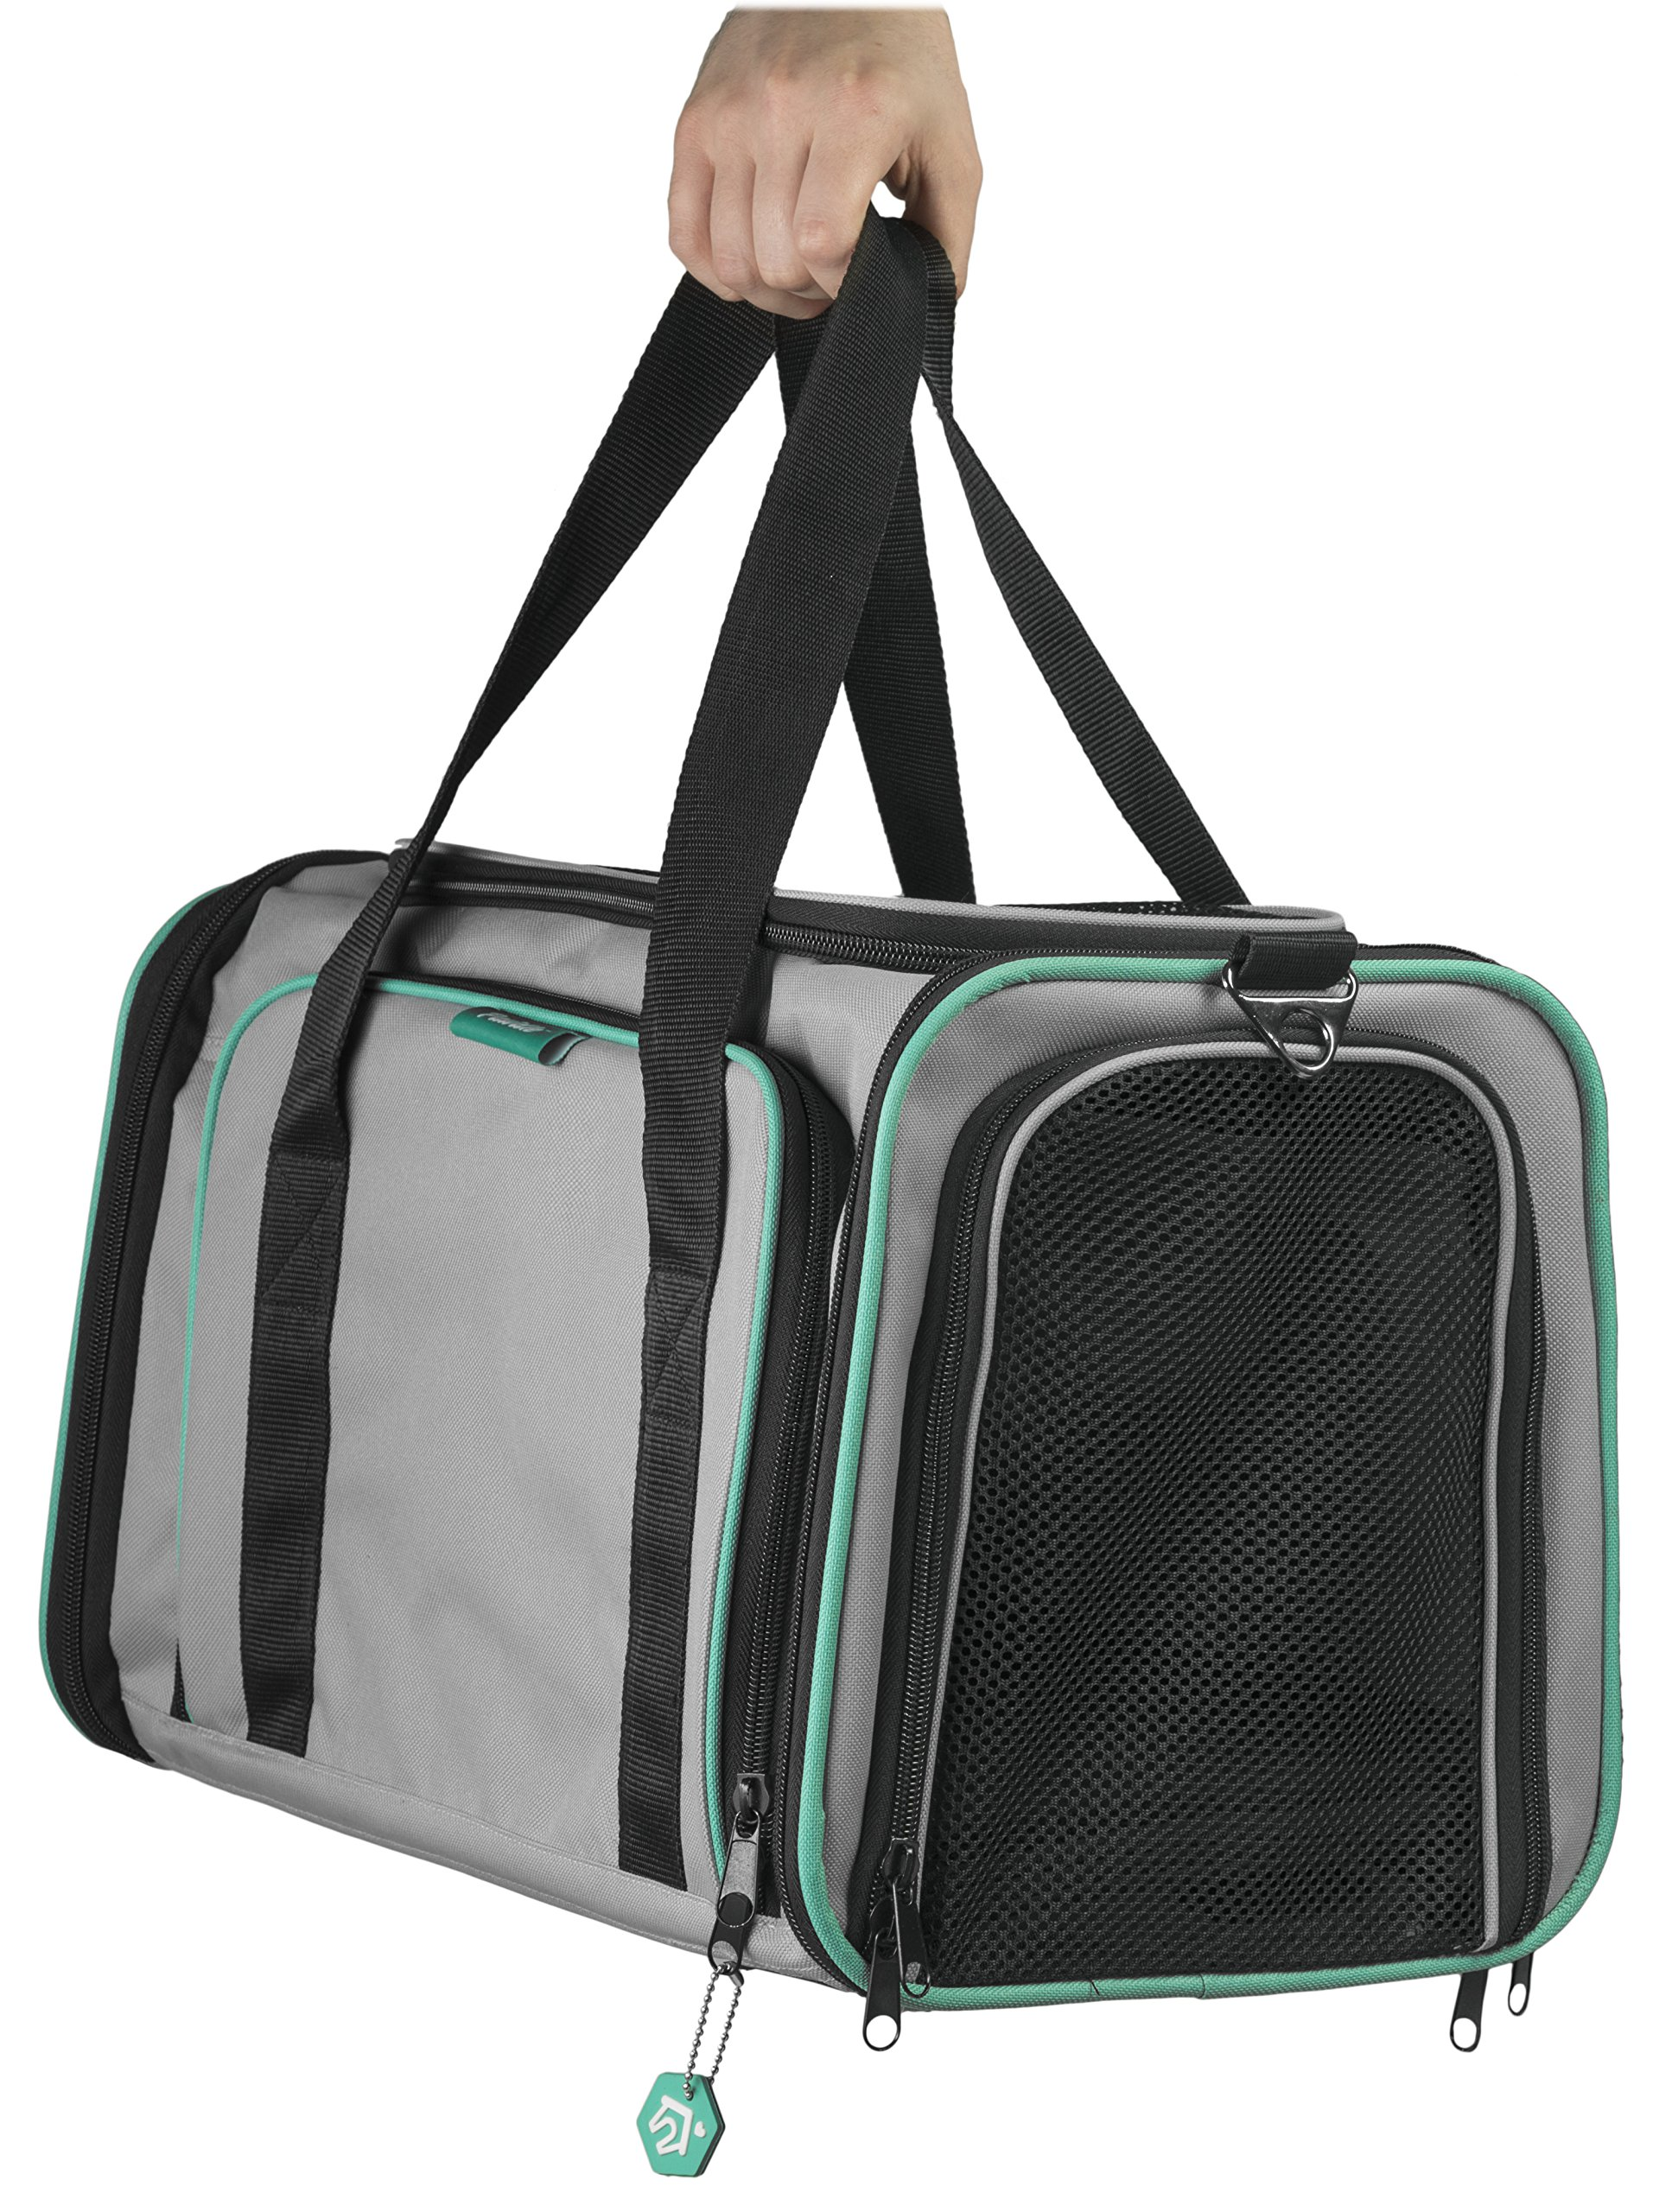 Pawdle Expandable and Foldable Pet Carrier Domestic Airline Approved (Heather Gray) by Pawdle (Image #3)